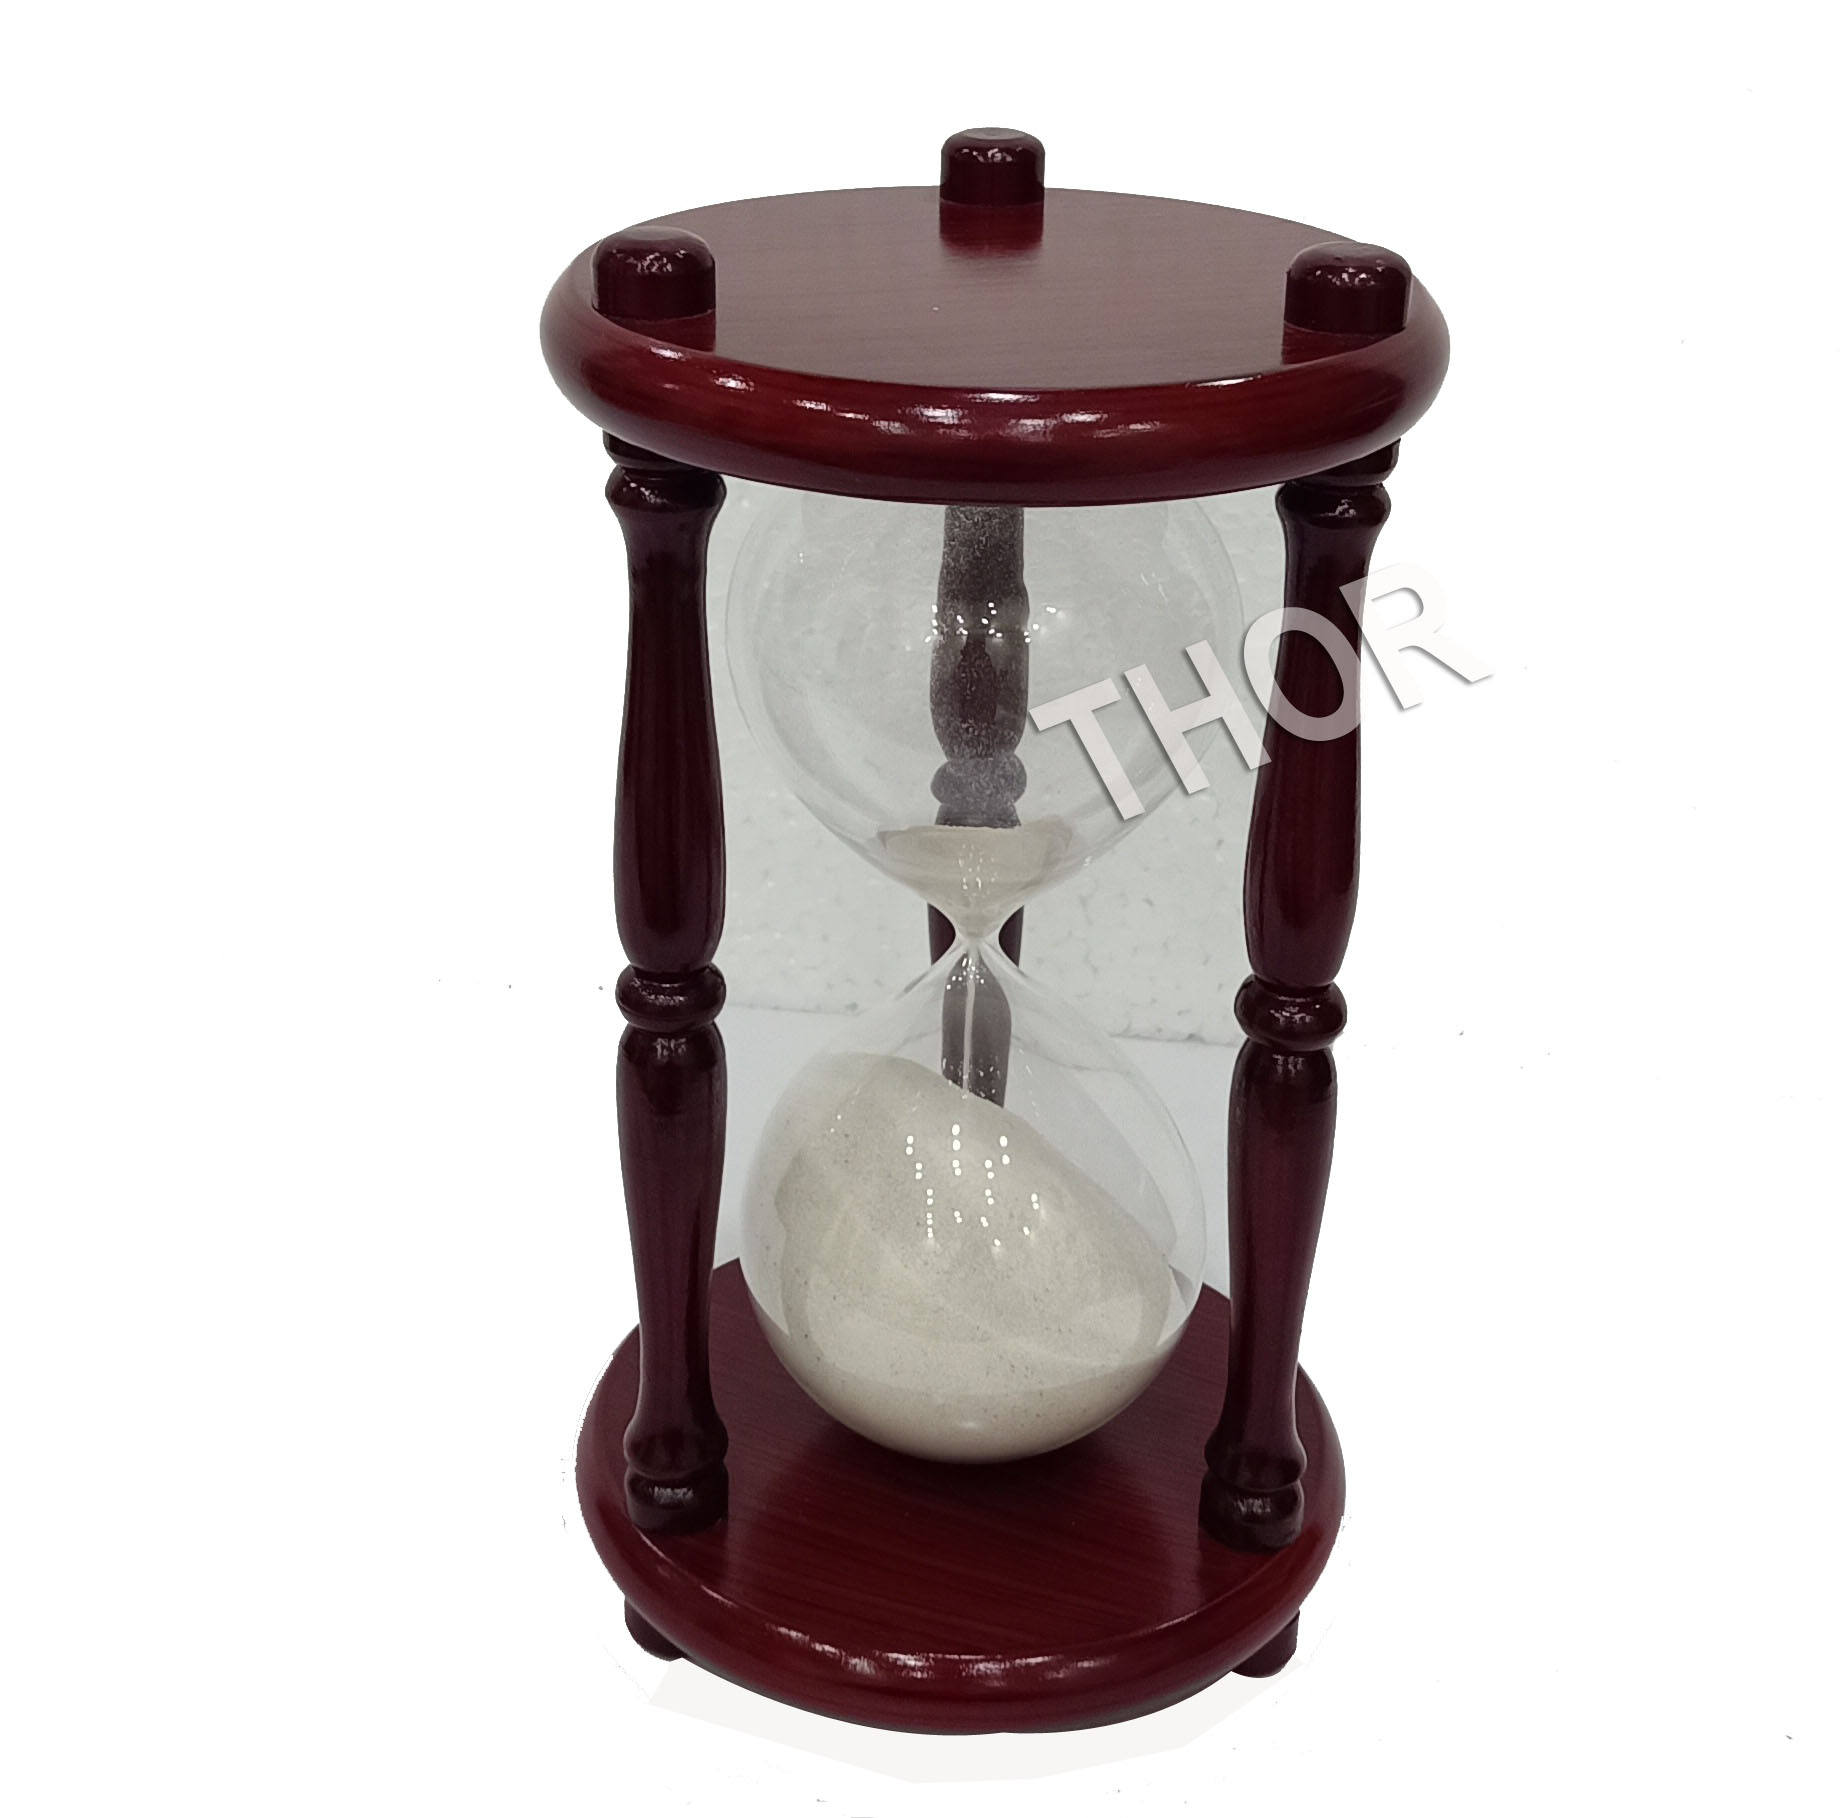 Hourglass Sand Timer Glass 30 Wood Time Clock For Kitchen Office Home Decor